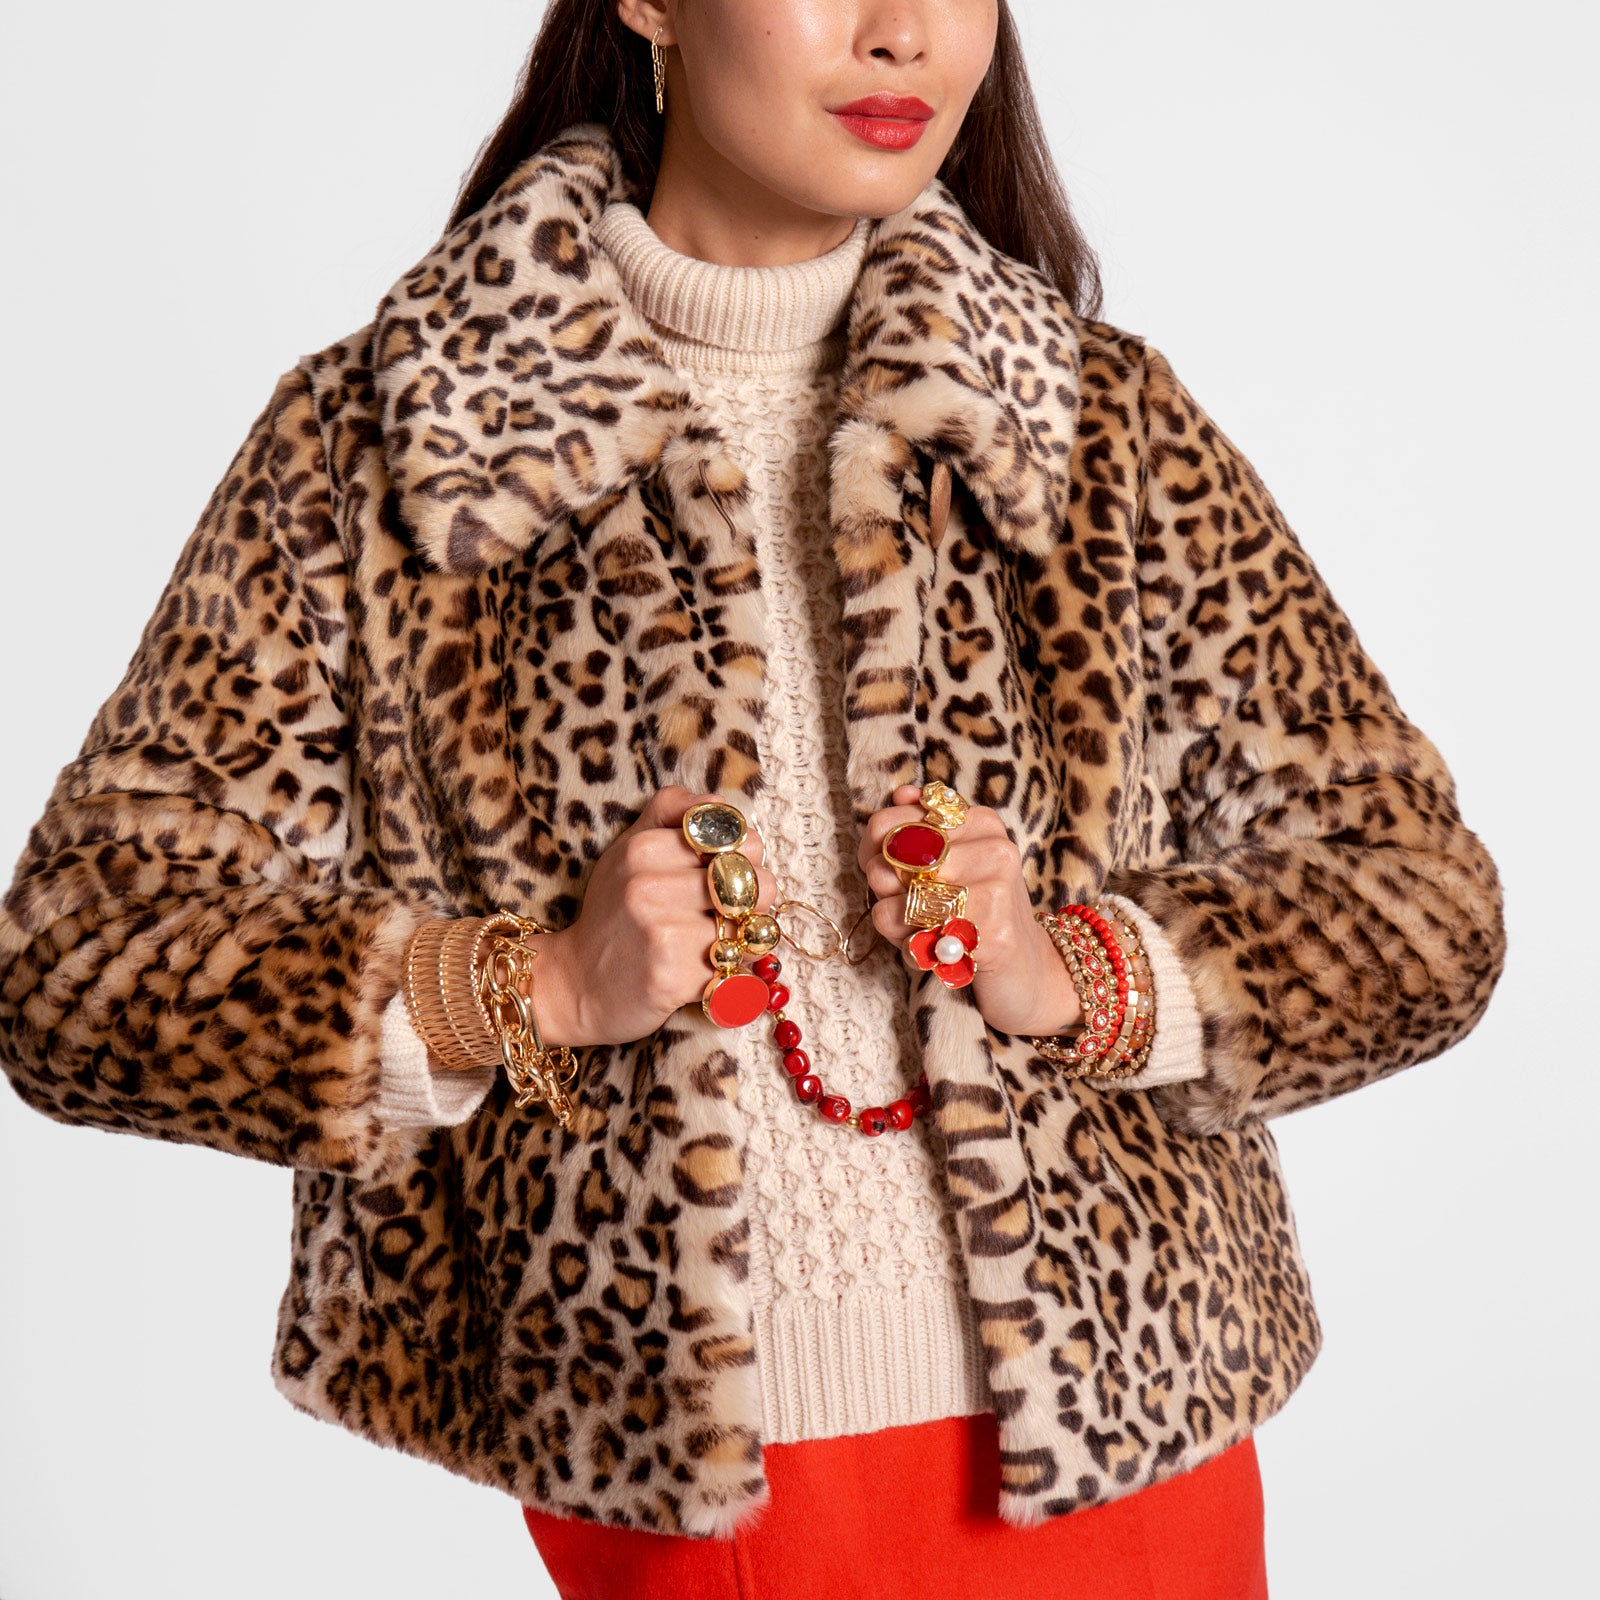 Short Faux Fur Jacket Leopard - Frances Valentine